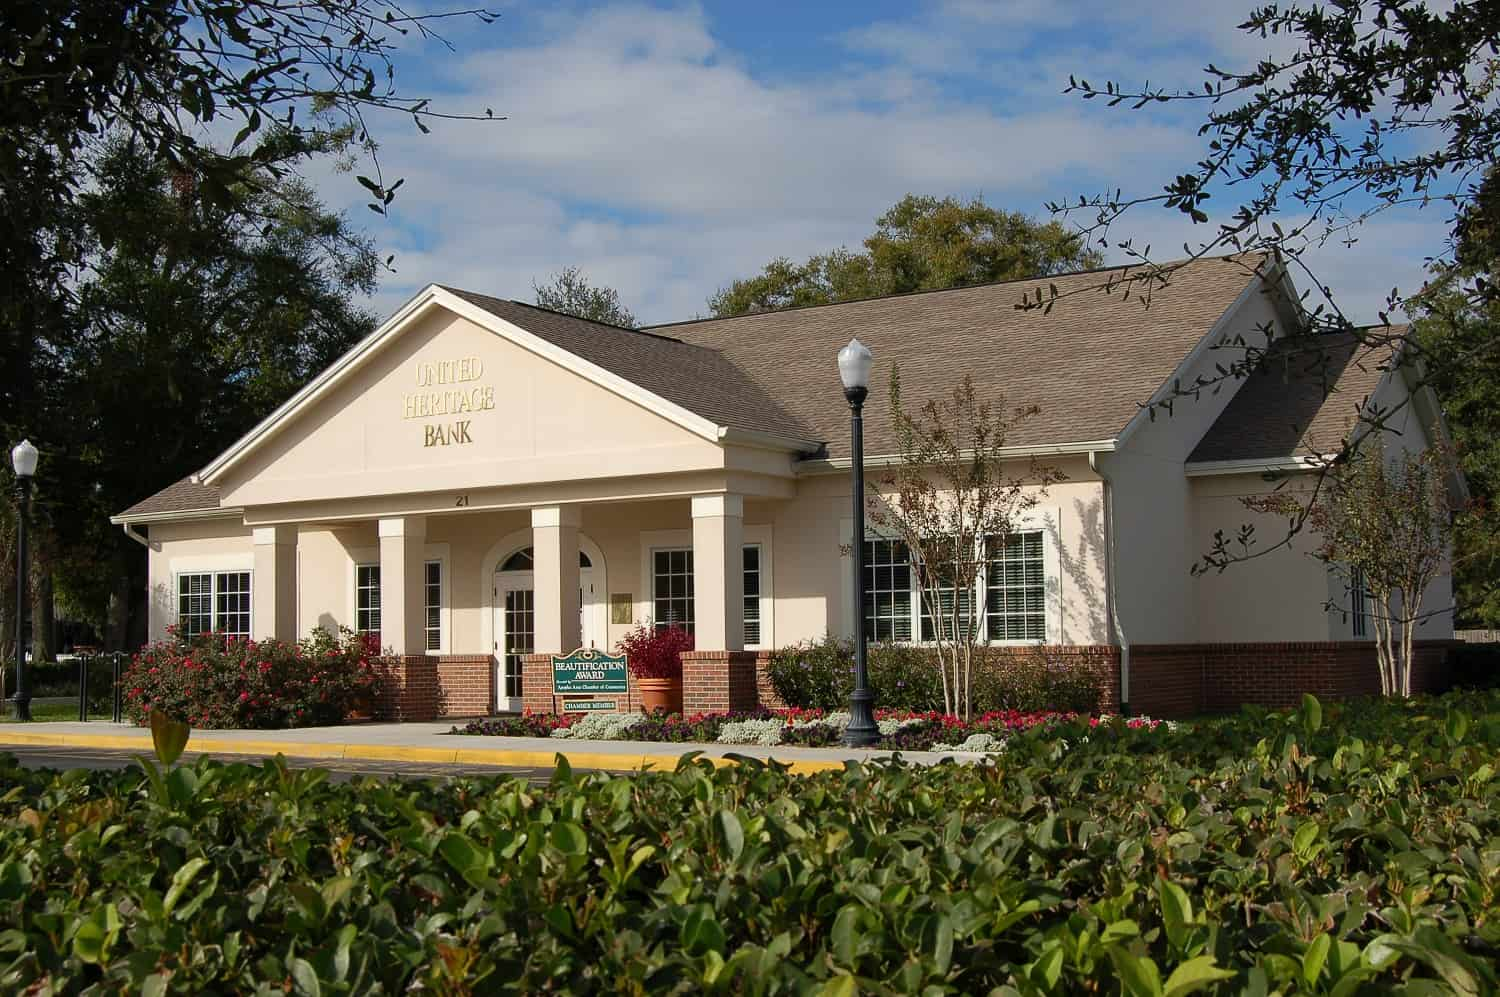 United Heritage Bank Apopka